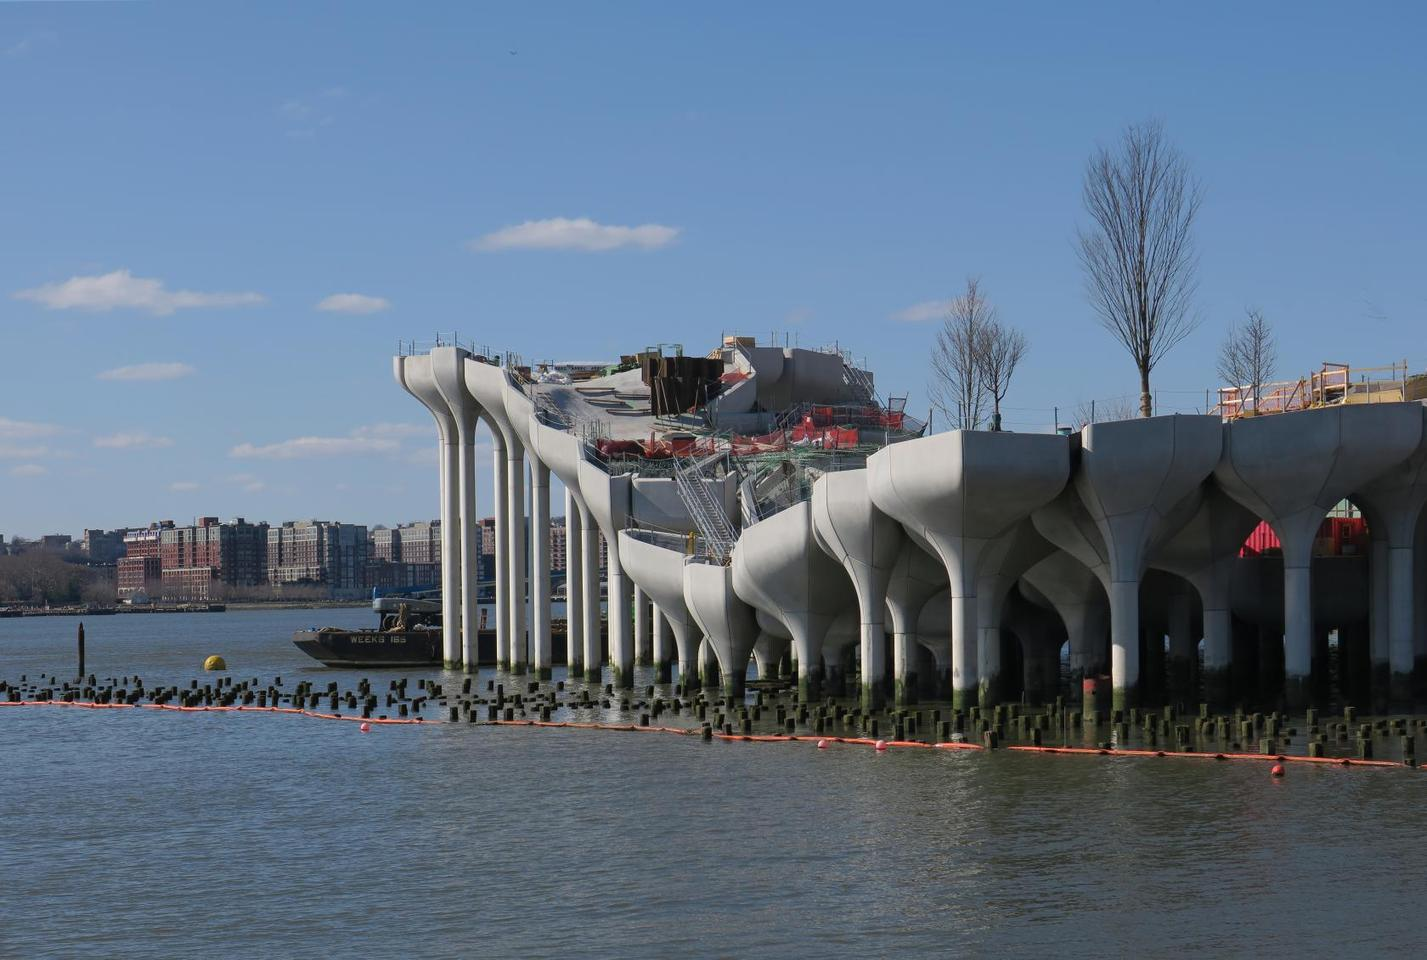 Little Island consists of 280 concrete piles which support planters arranged in an undulating pattern